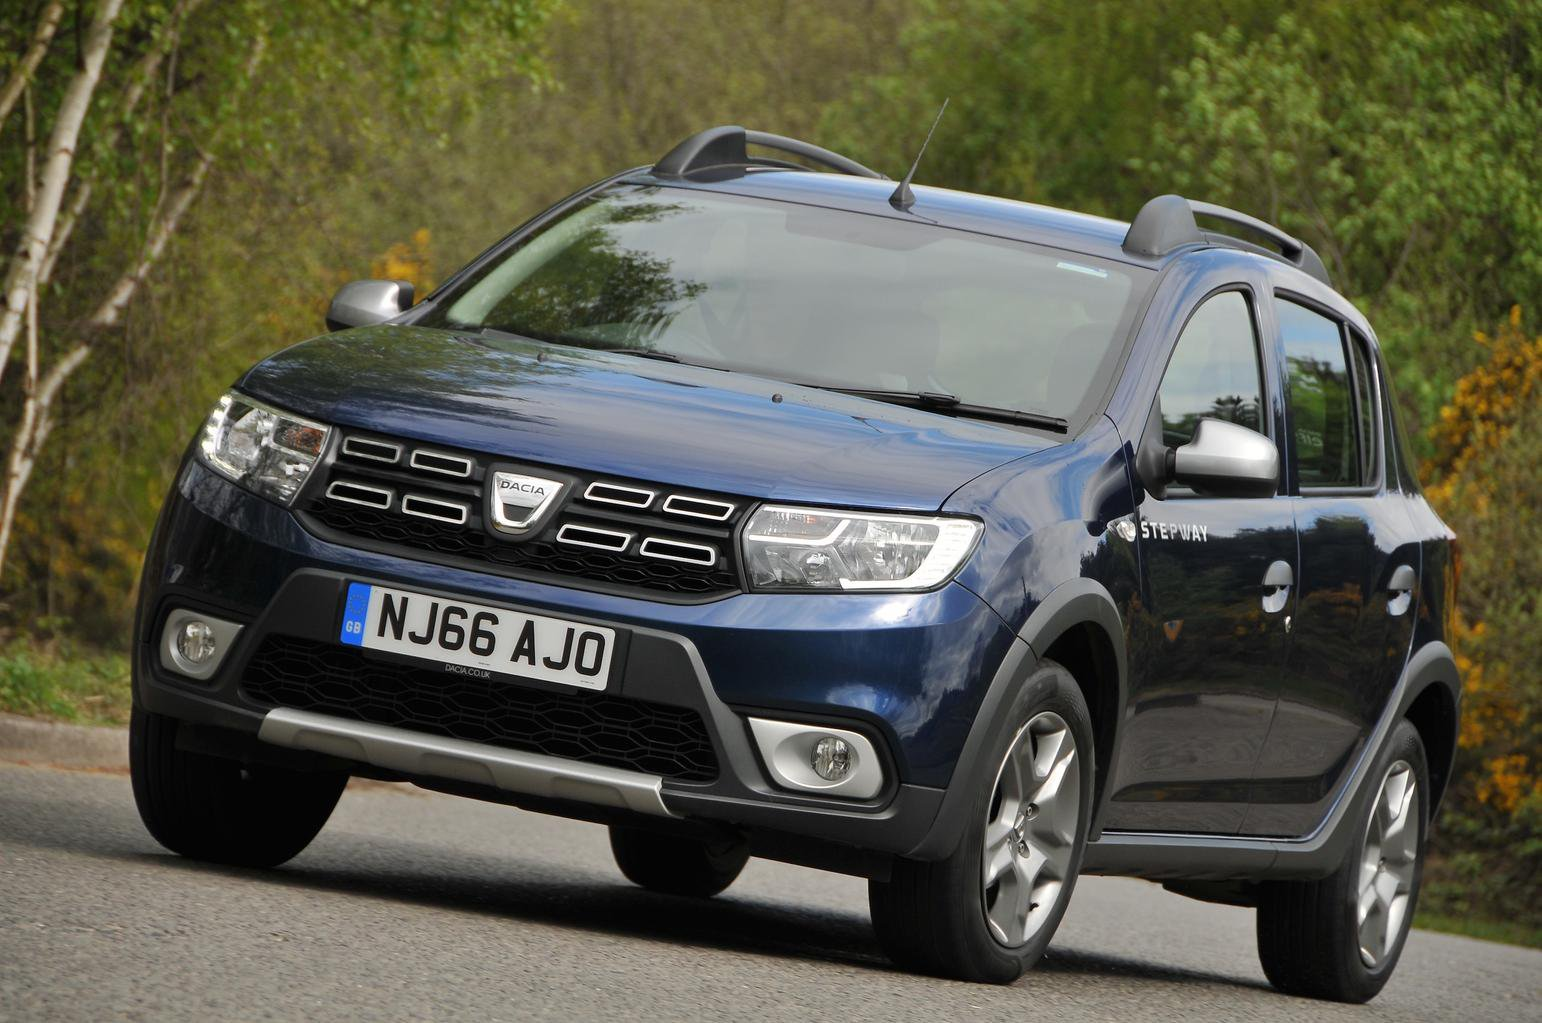 dacia sandero stepway review 2019 what car. Black Bedroom Furniture Sets. Home Design Ideas